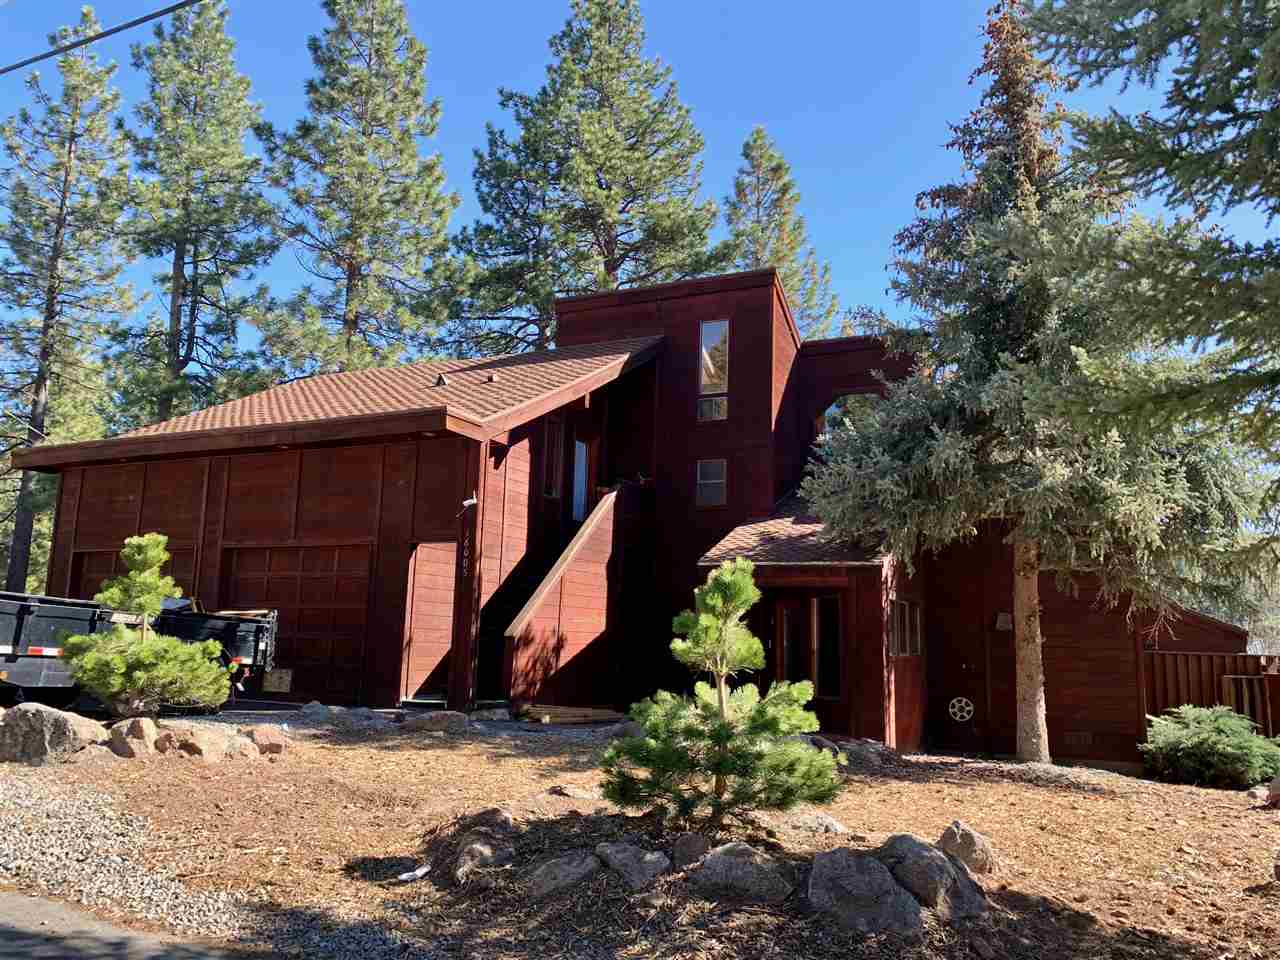 Image for 16005 Canterbury Lane, Truckee, CA 96161-6161